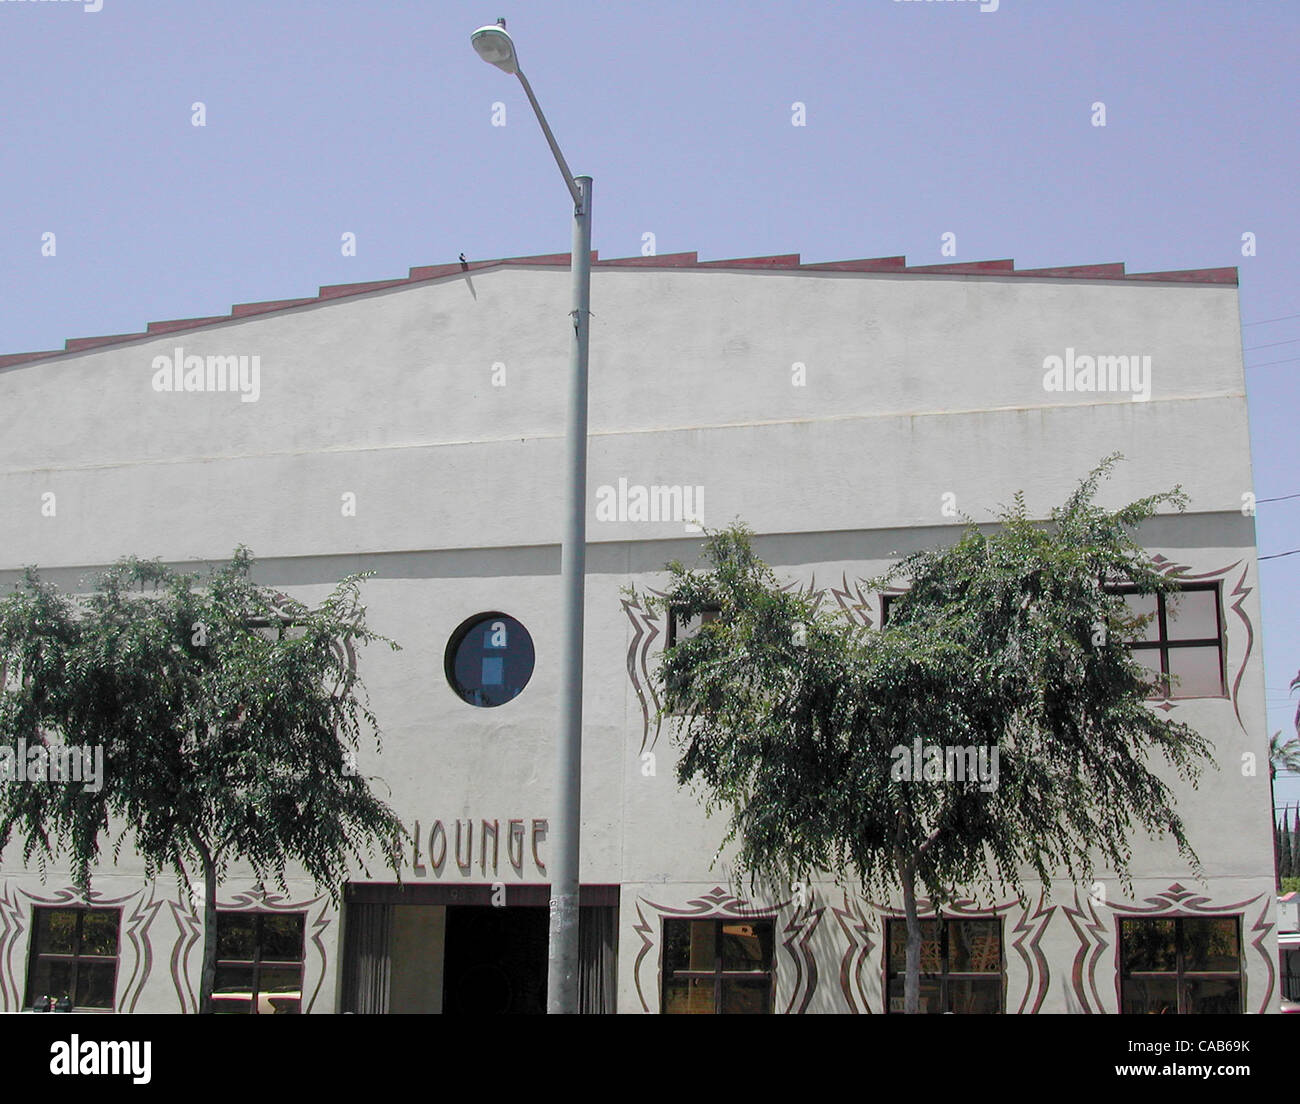 May 08, 2004; Los Angeles, CA, USA; A popular club with Hollywood A-listers. The Lounge, club, hotspot. Stock Photo